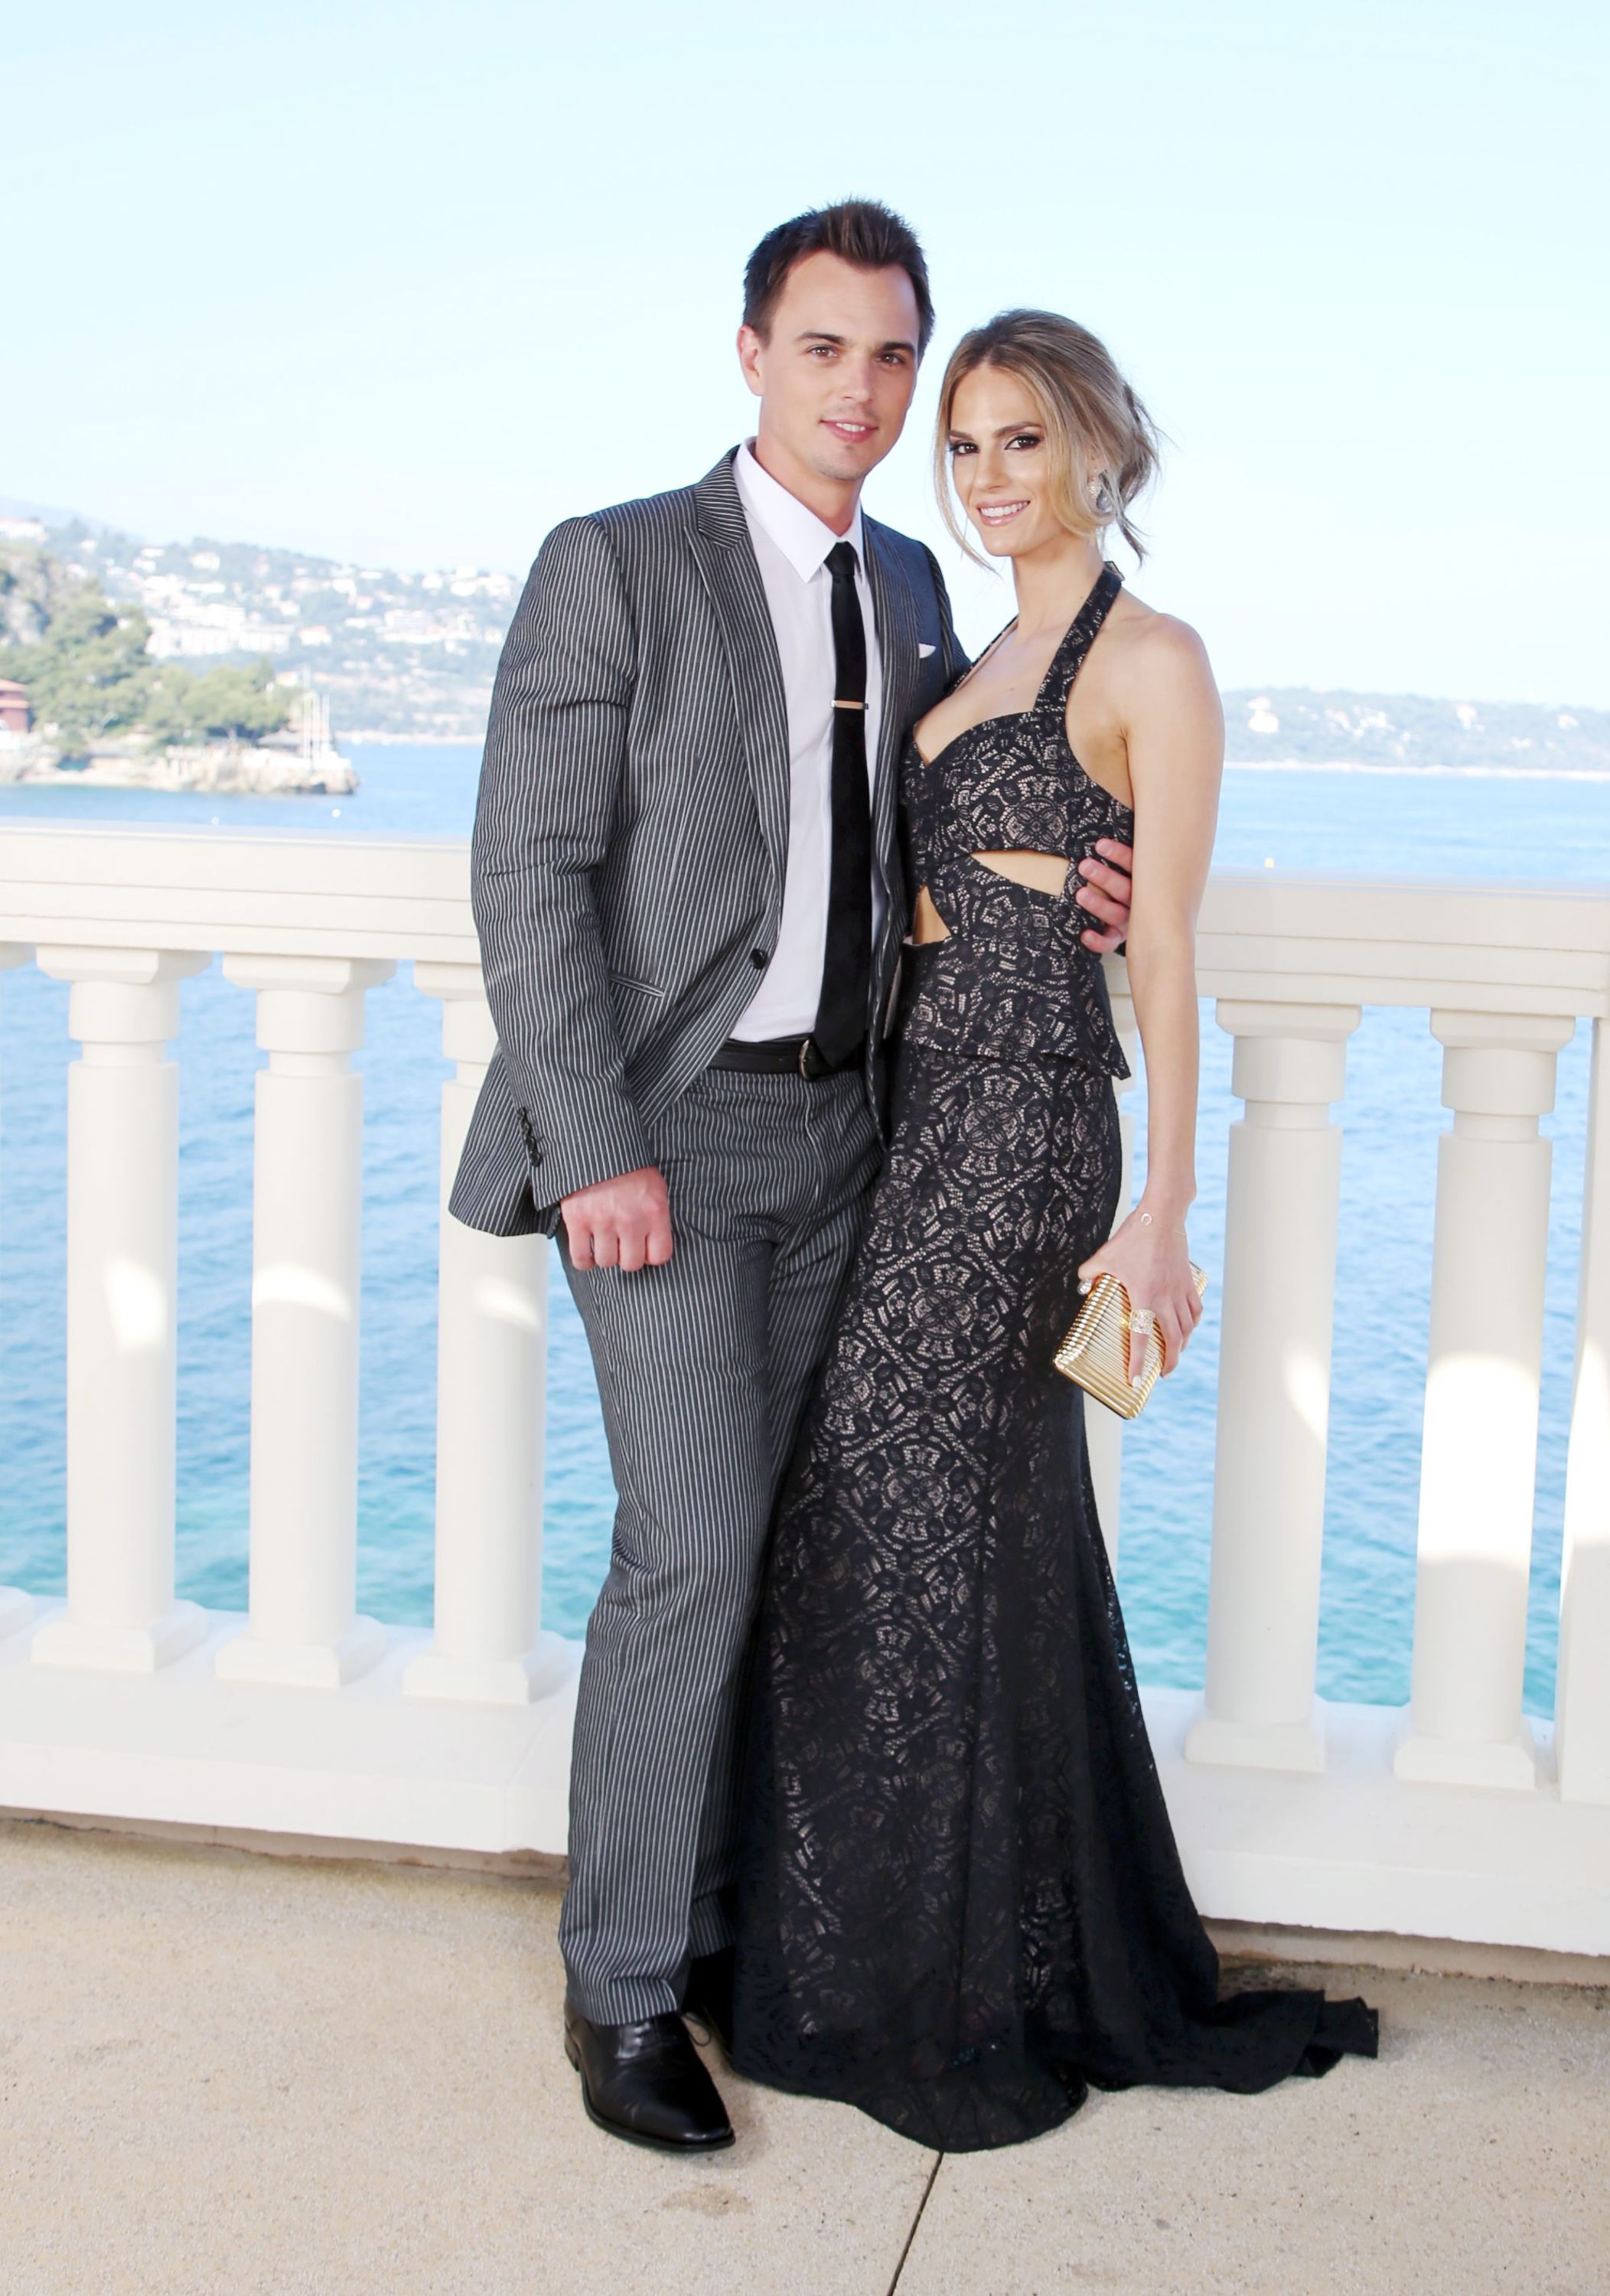 The Happy Couple - Darrin Brooks and Kelly Kruger